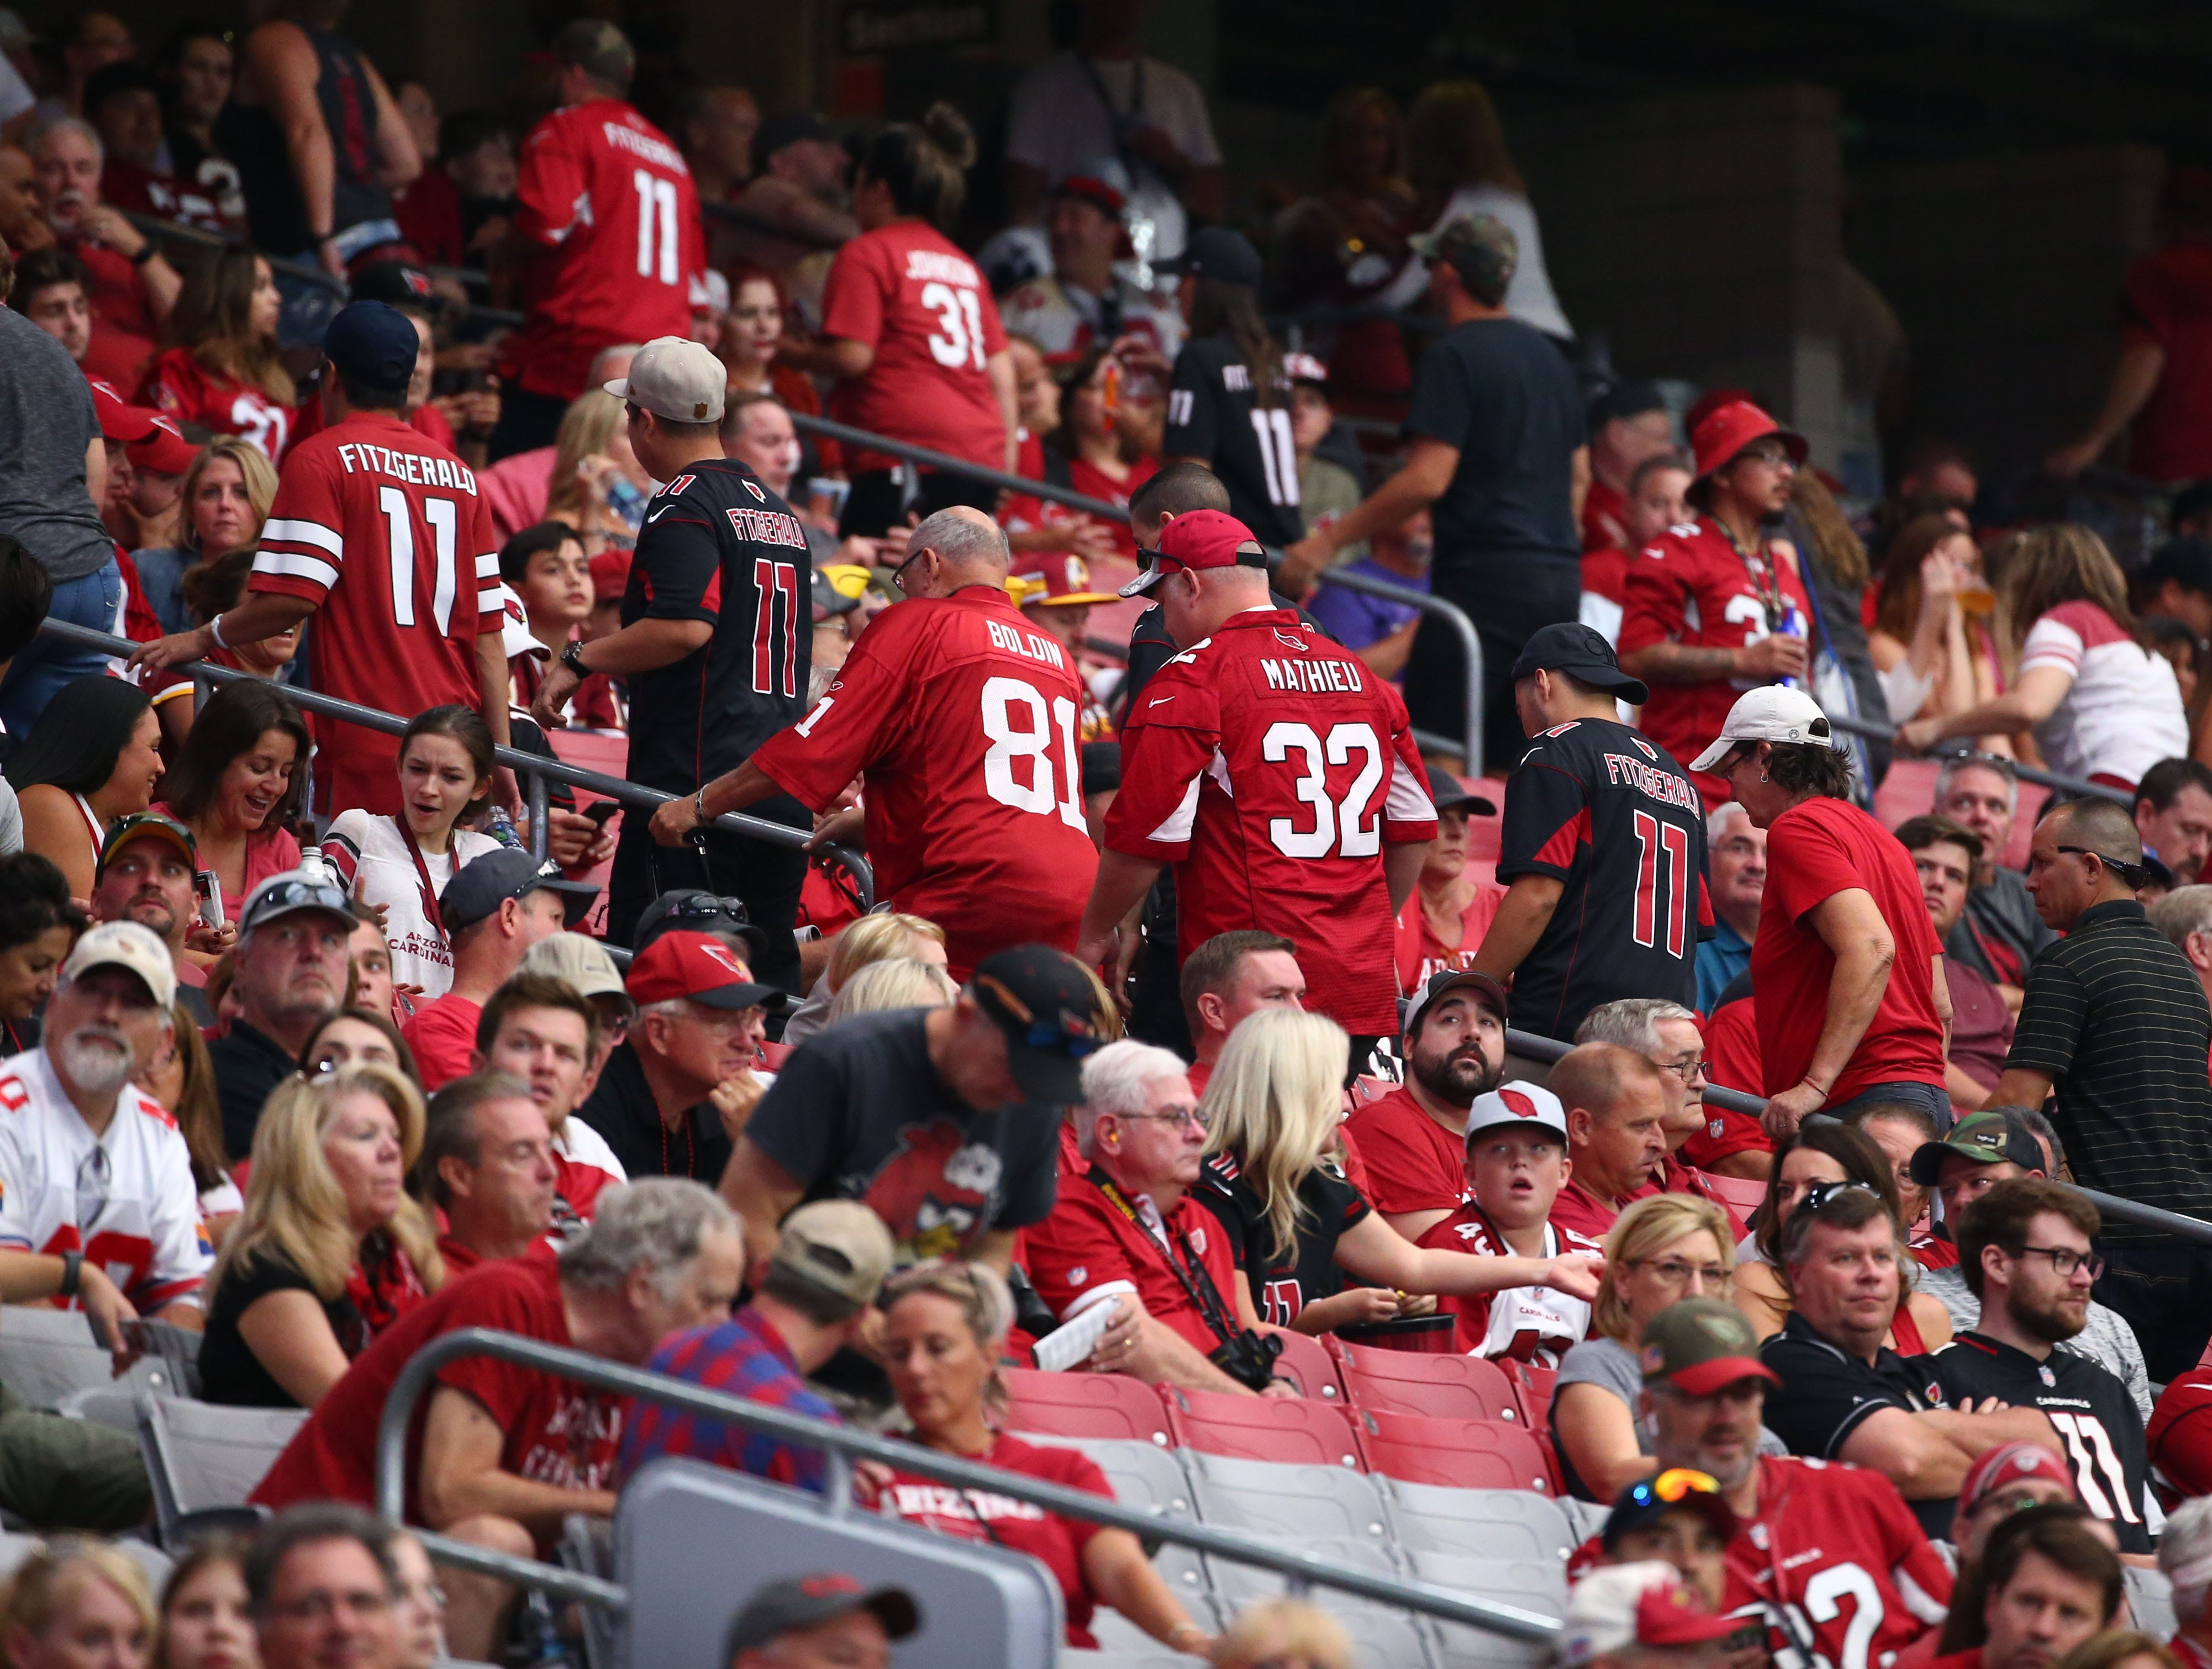 Fans head for the exits as the Arizona Cardinals lose to the Washington Redskins 24-6 at State Farm Stadium.